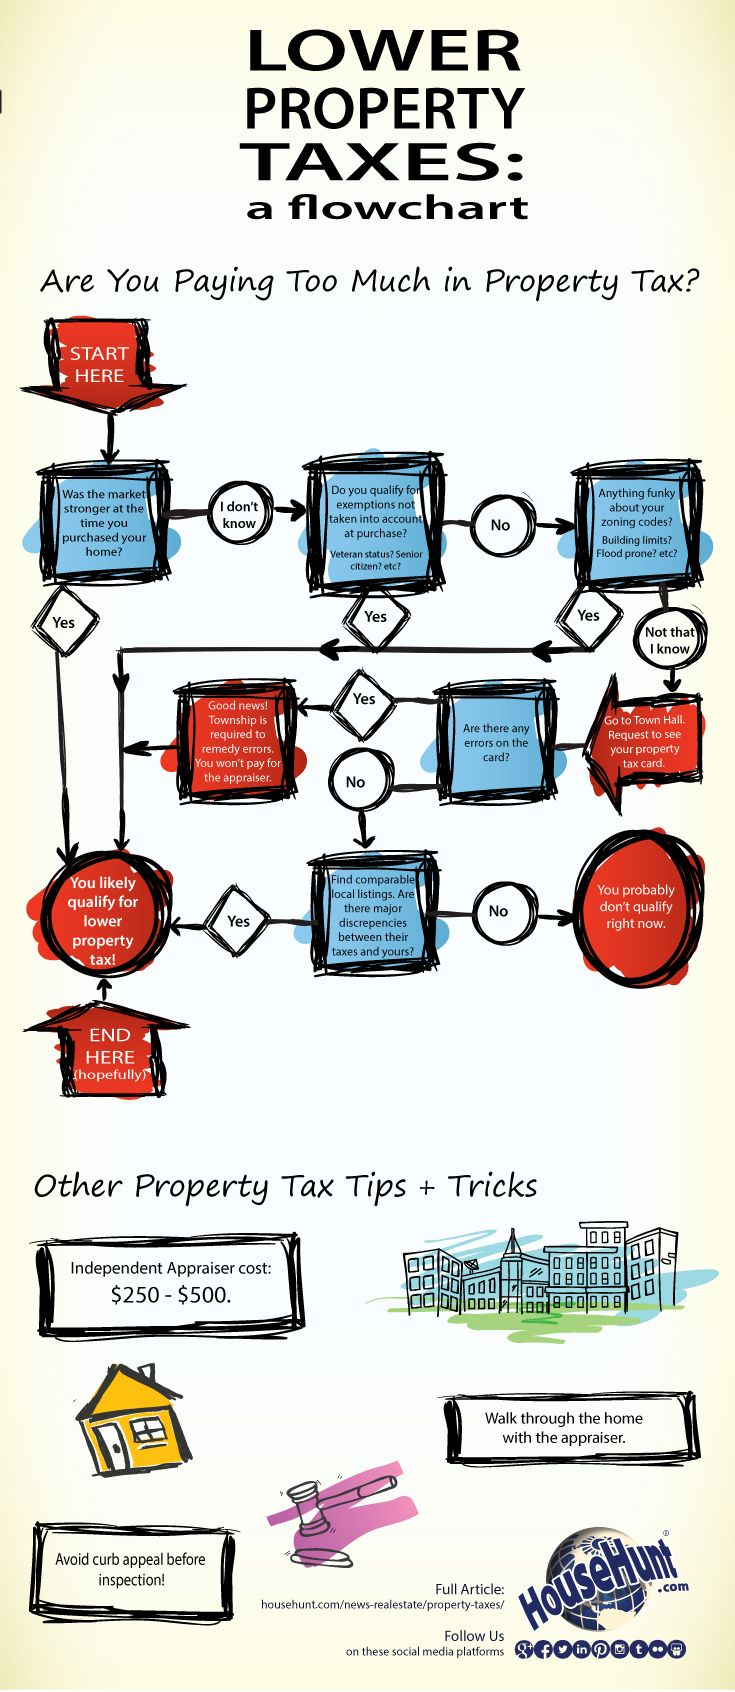 Lower My Property Taxes #infographic : http://www.househunt.com/news-realestate/property-taxes/